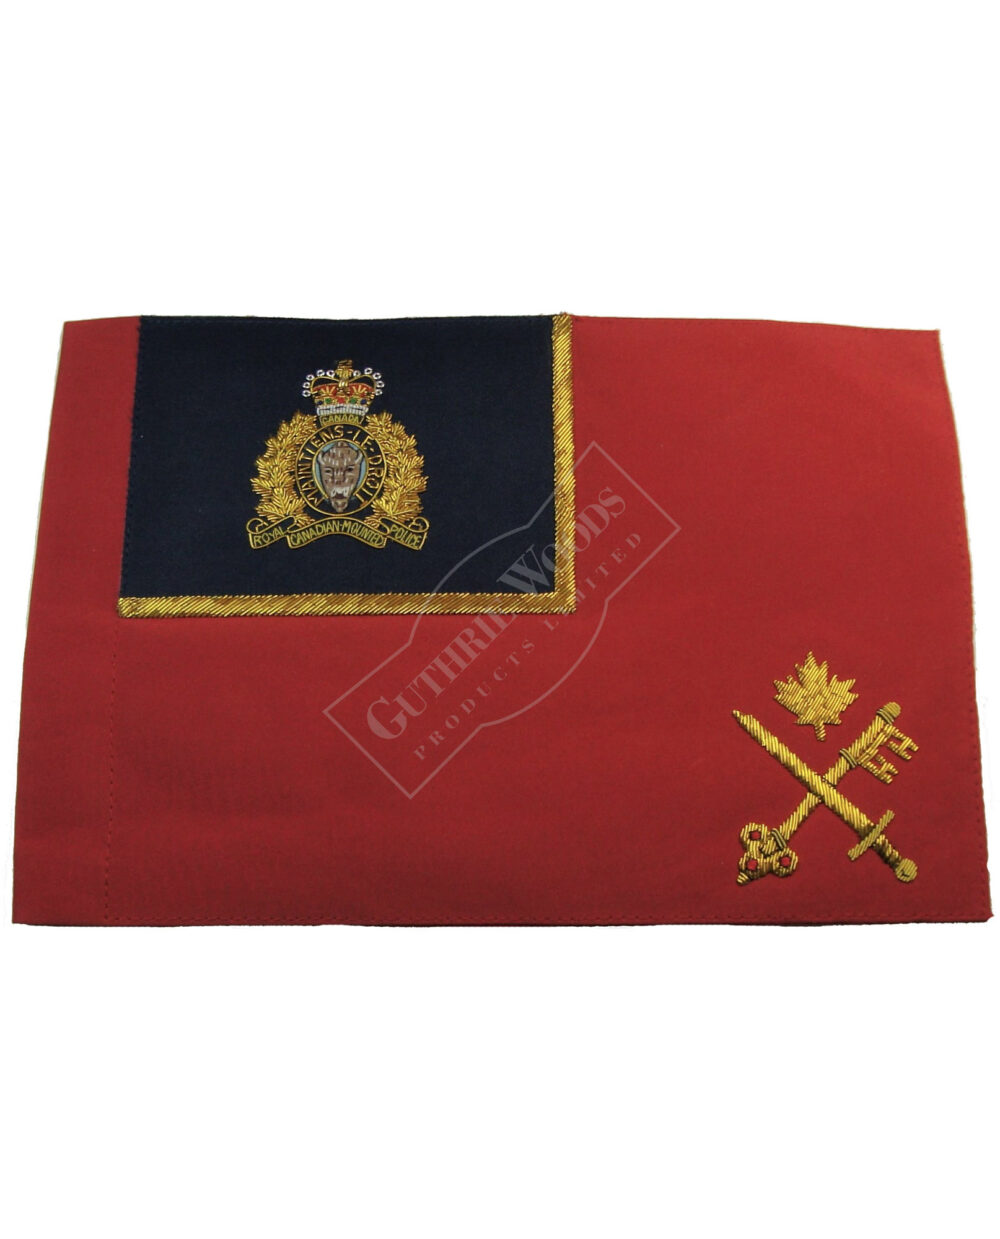 RCMP Miniature Division Ensign R173-NATL